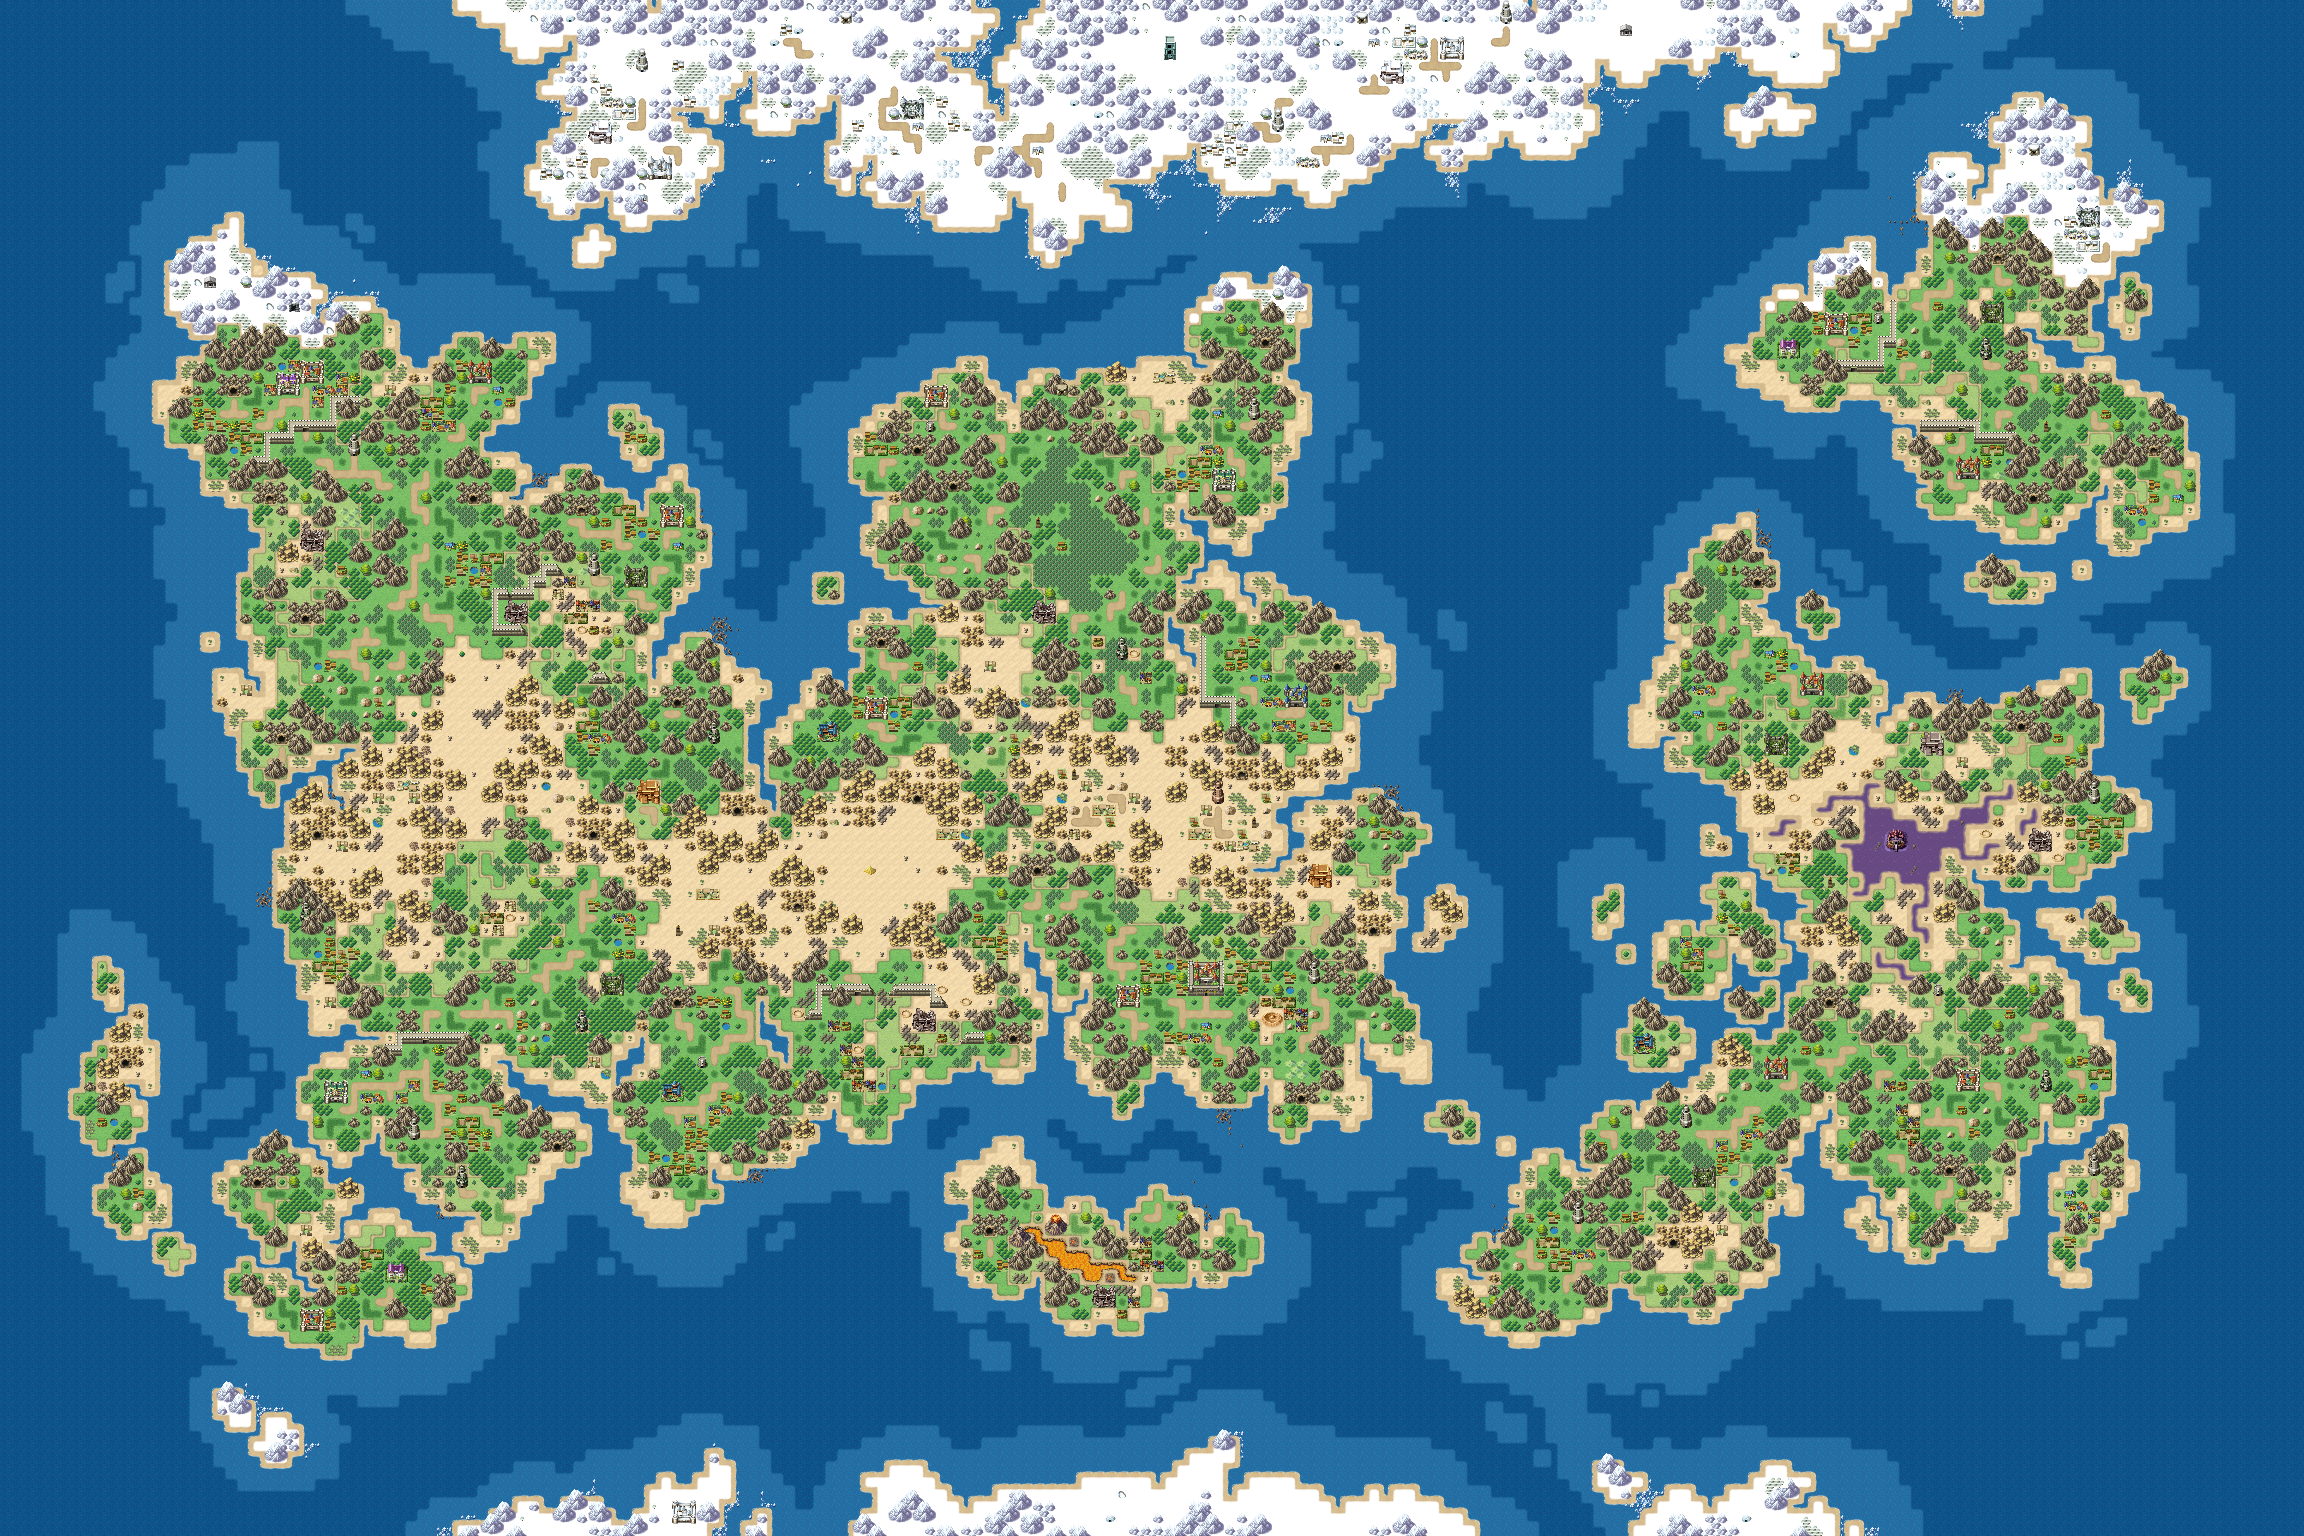 Tilemap] Grand Juno - Resource Map for RPG Makers : gameassets